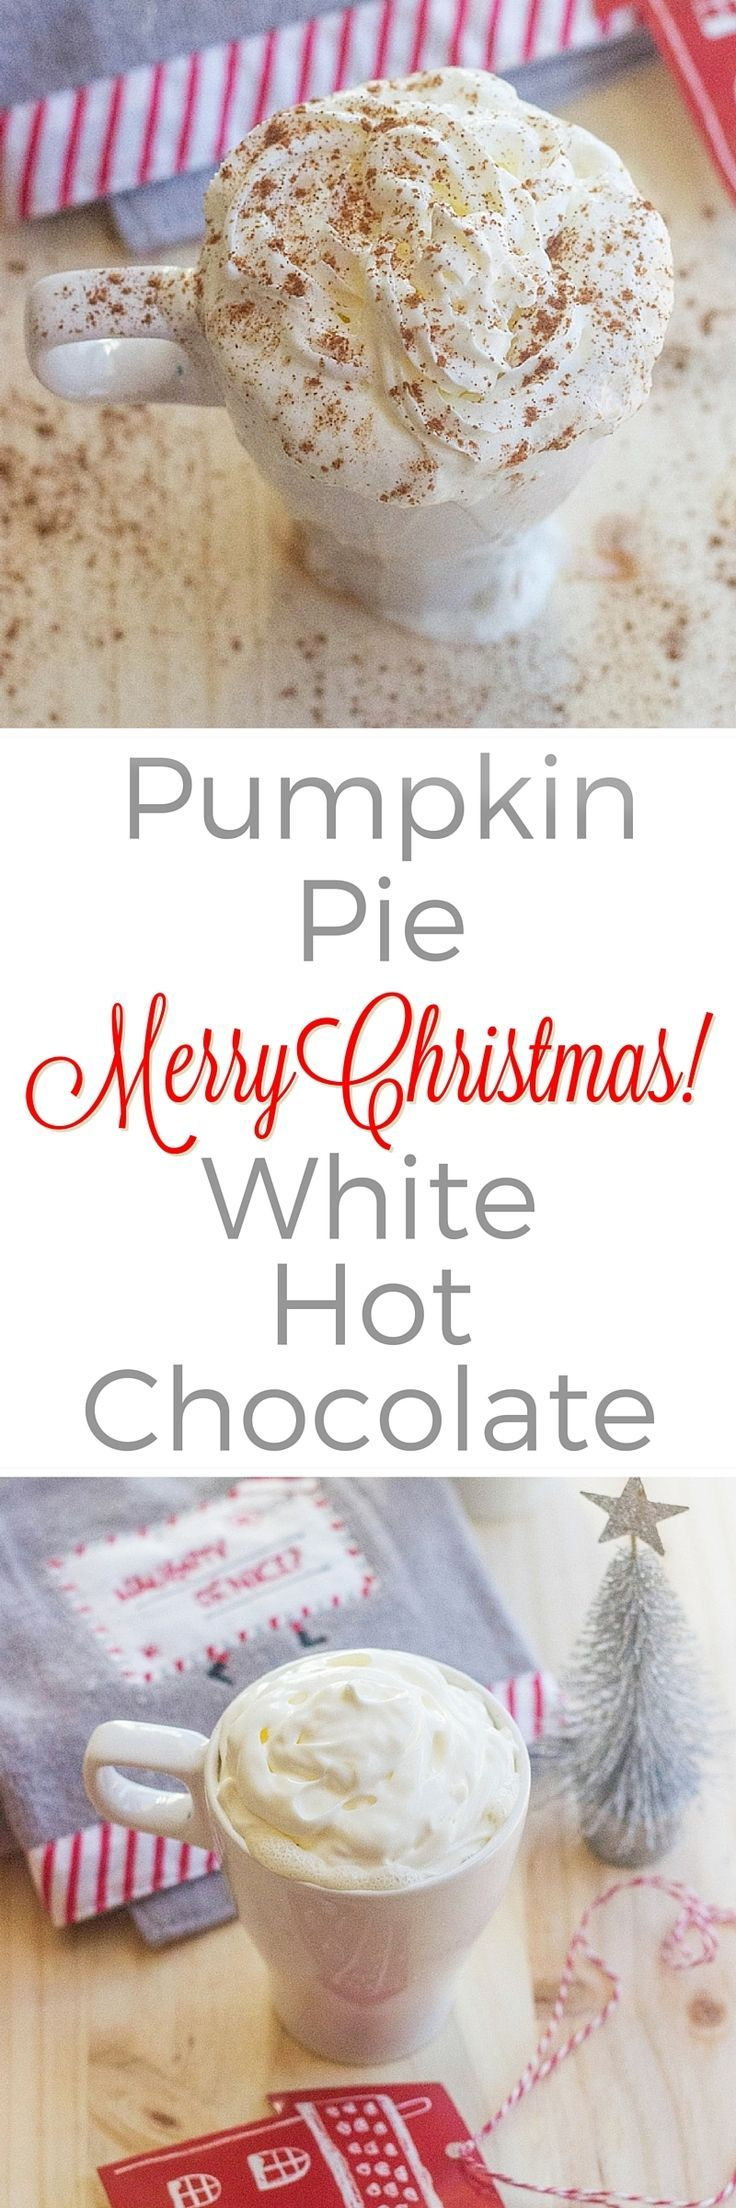 This Pumpkin Pie White Hot Chocolate is made with leftover pumpkin pie ...